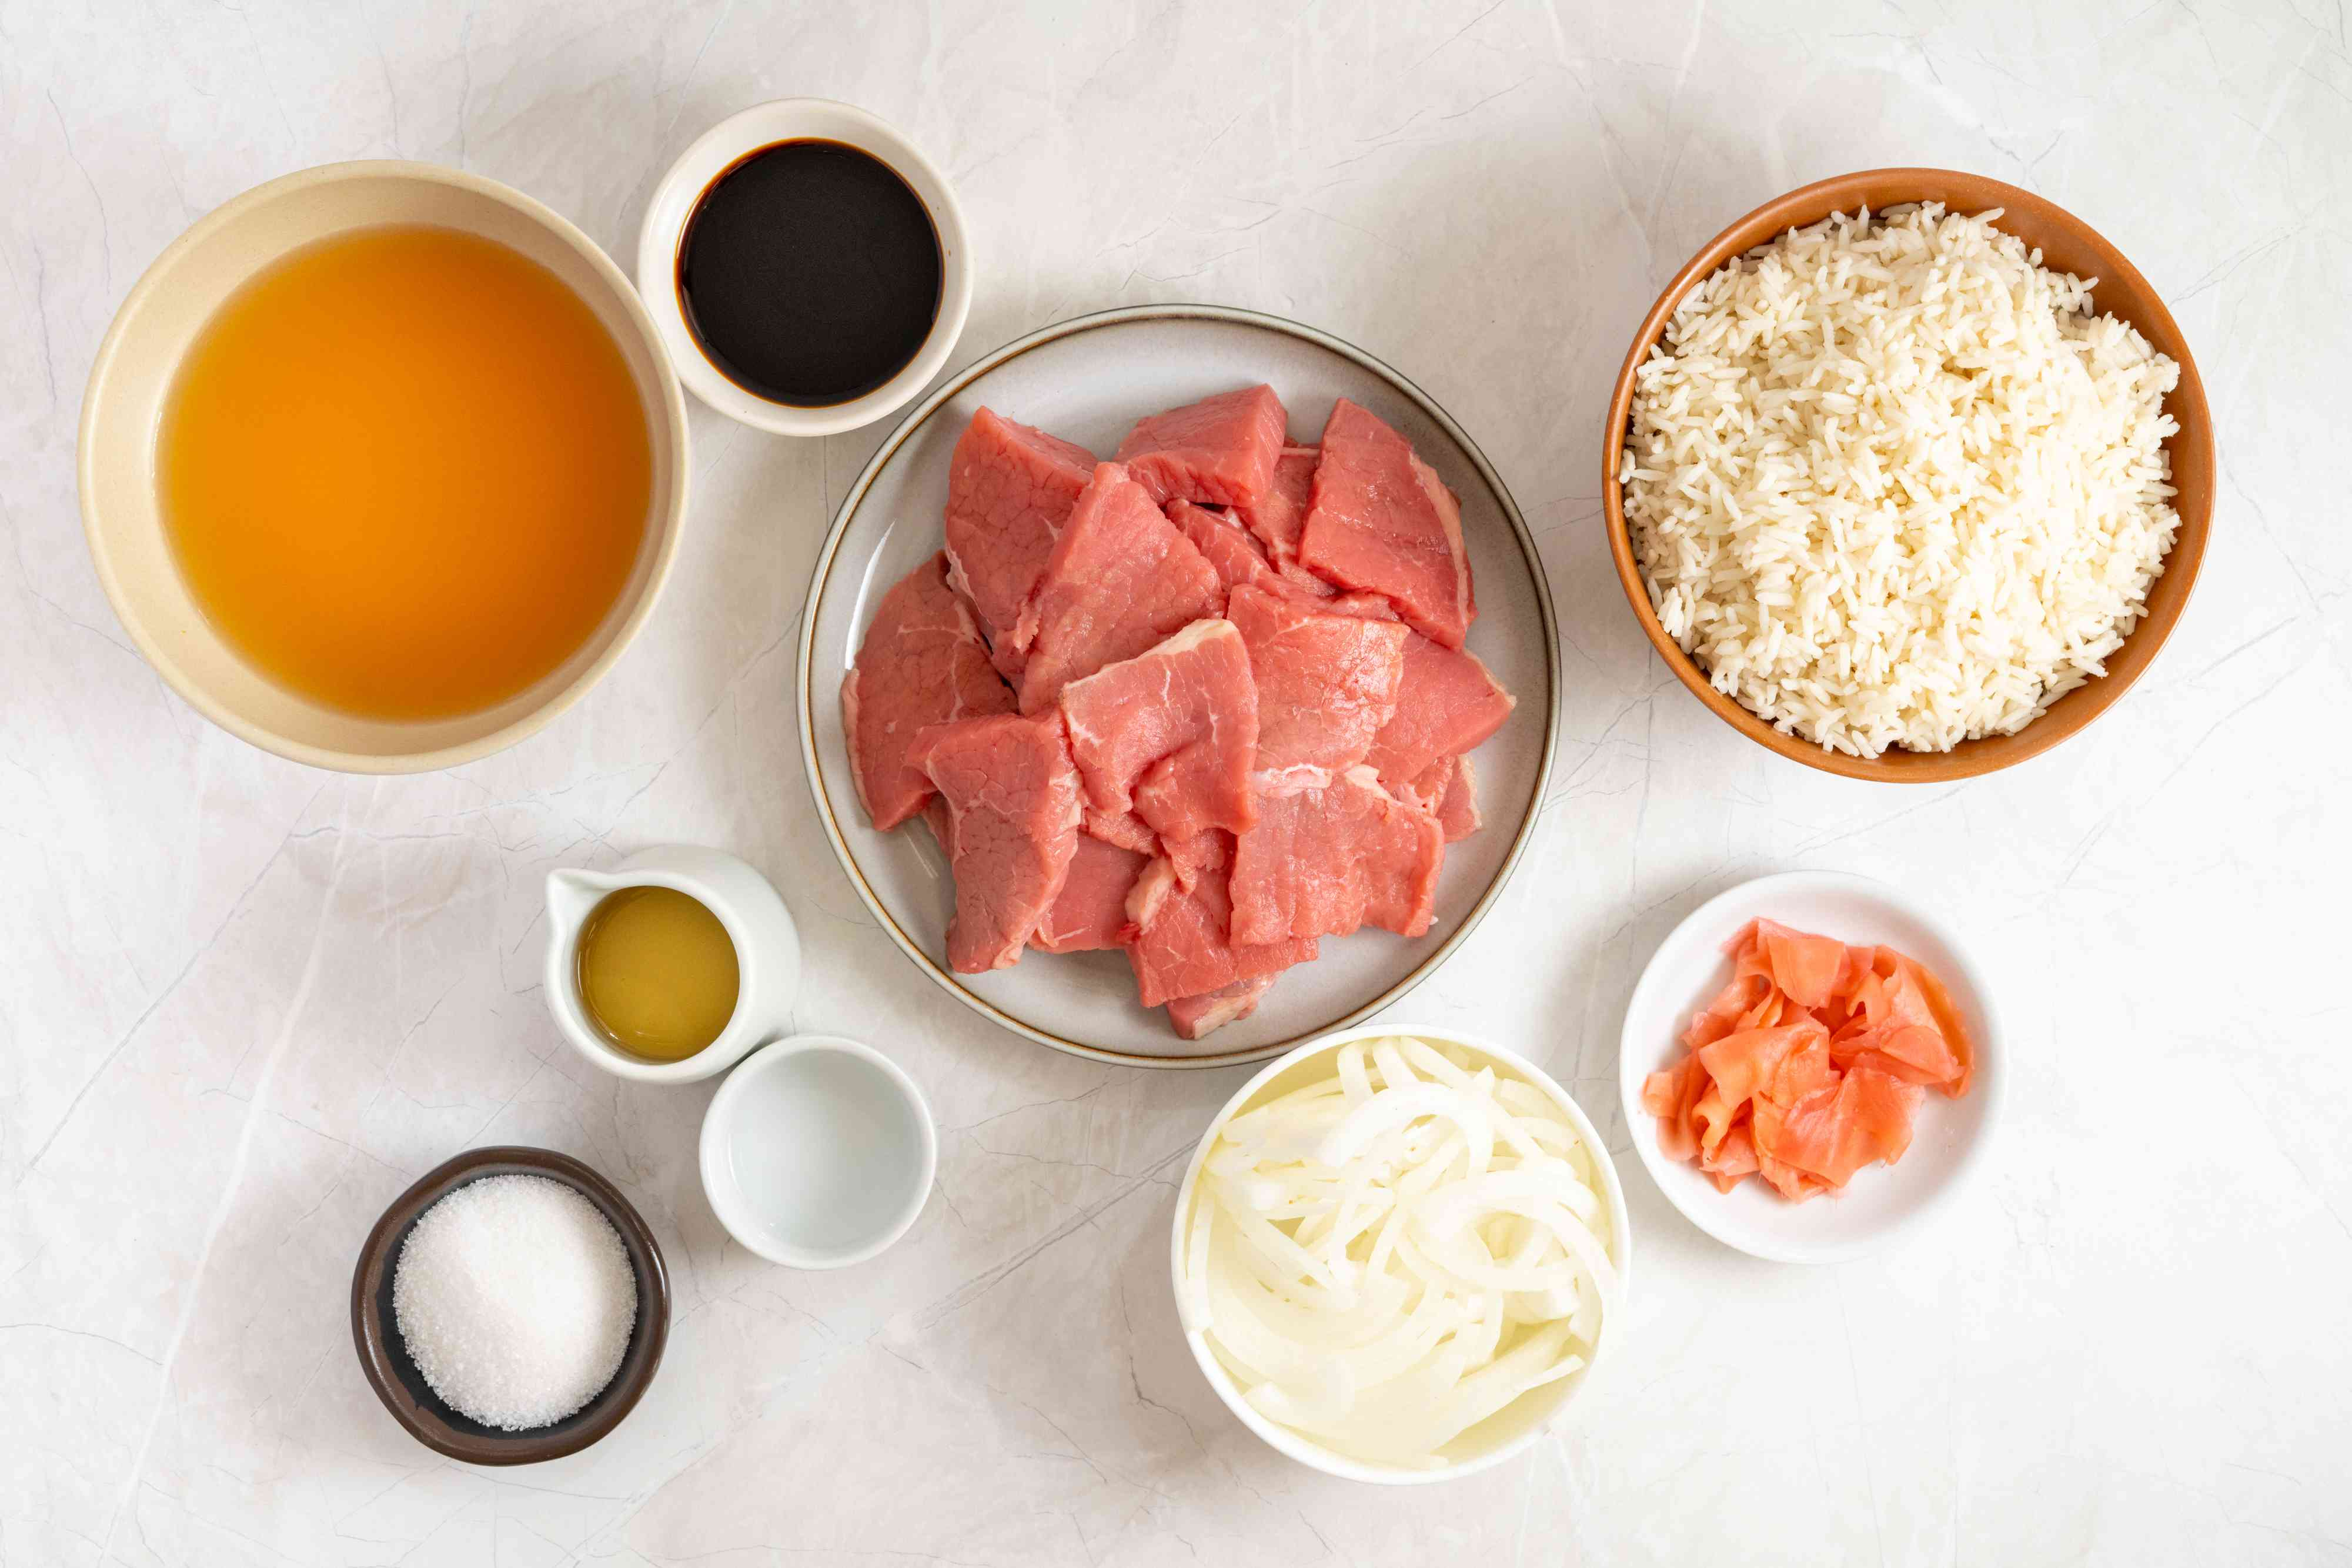 Ingredients for Gyudon